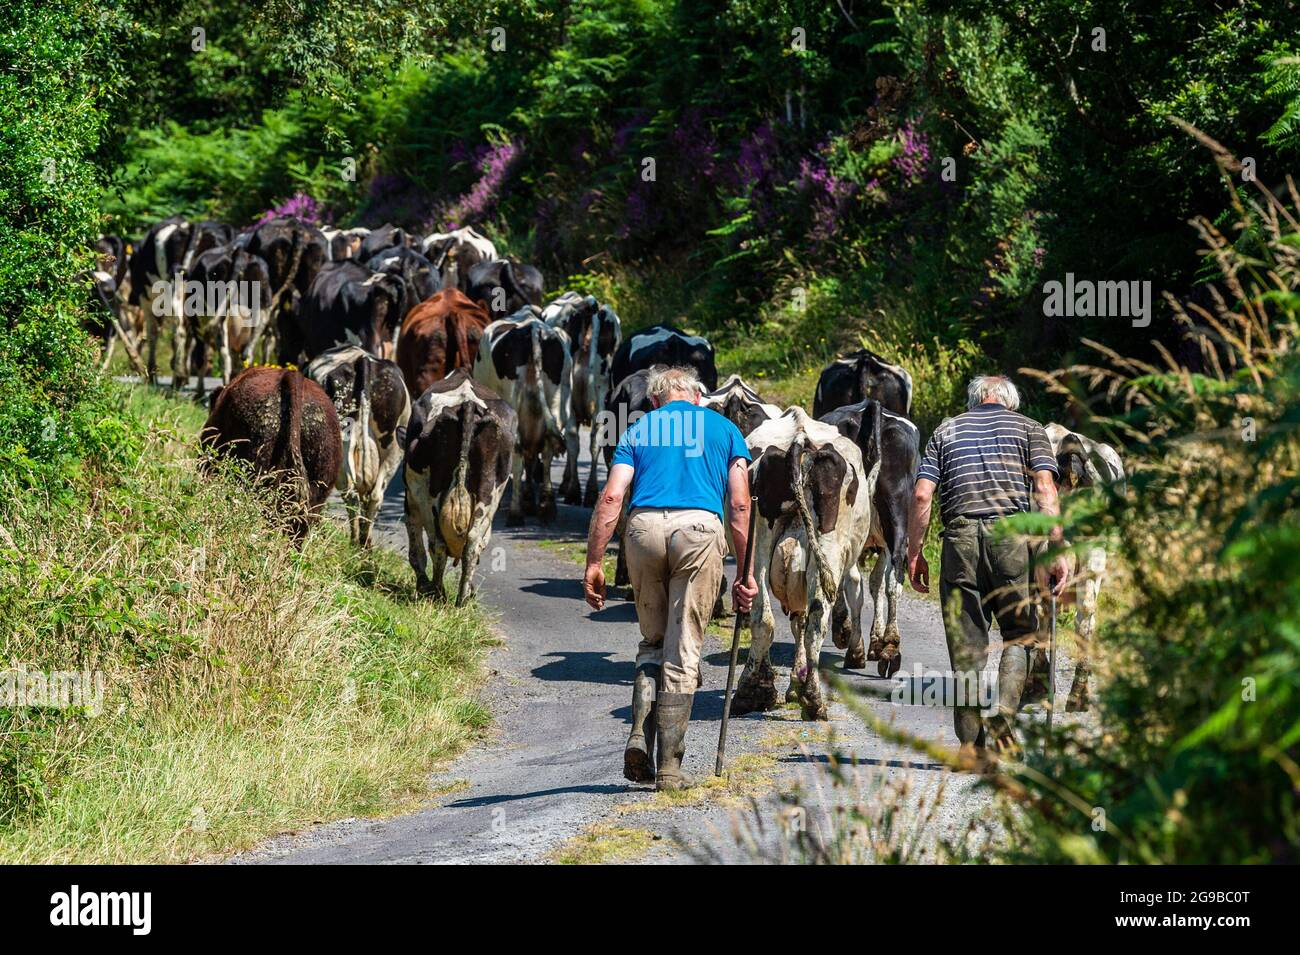 drimoleague-west-cork-ireland-25th-july-2021-on-a-hot-and-sunny-day-in-west-cork-dairy-farmer-paul-kingston-moves-his-75-strong-herd-of-dairy-cows-across-the-r586-at-drimoleague-the-good-weather-is-at-an-end-with-met-ireann-forecasting-thunderstorms-over-the-next-few-days-credit-ag-newsalamy-live-news-2G9BC0T.jpg